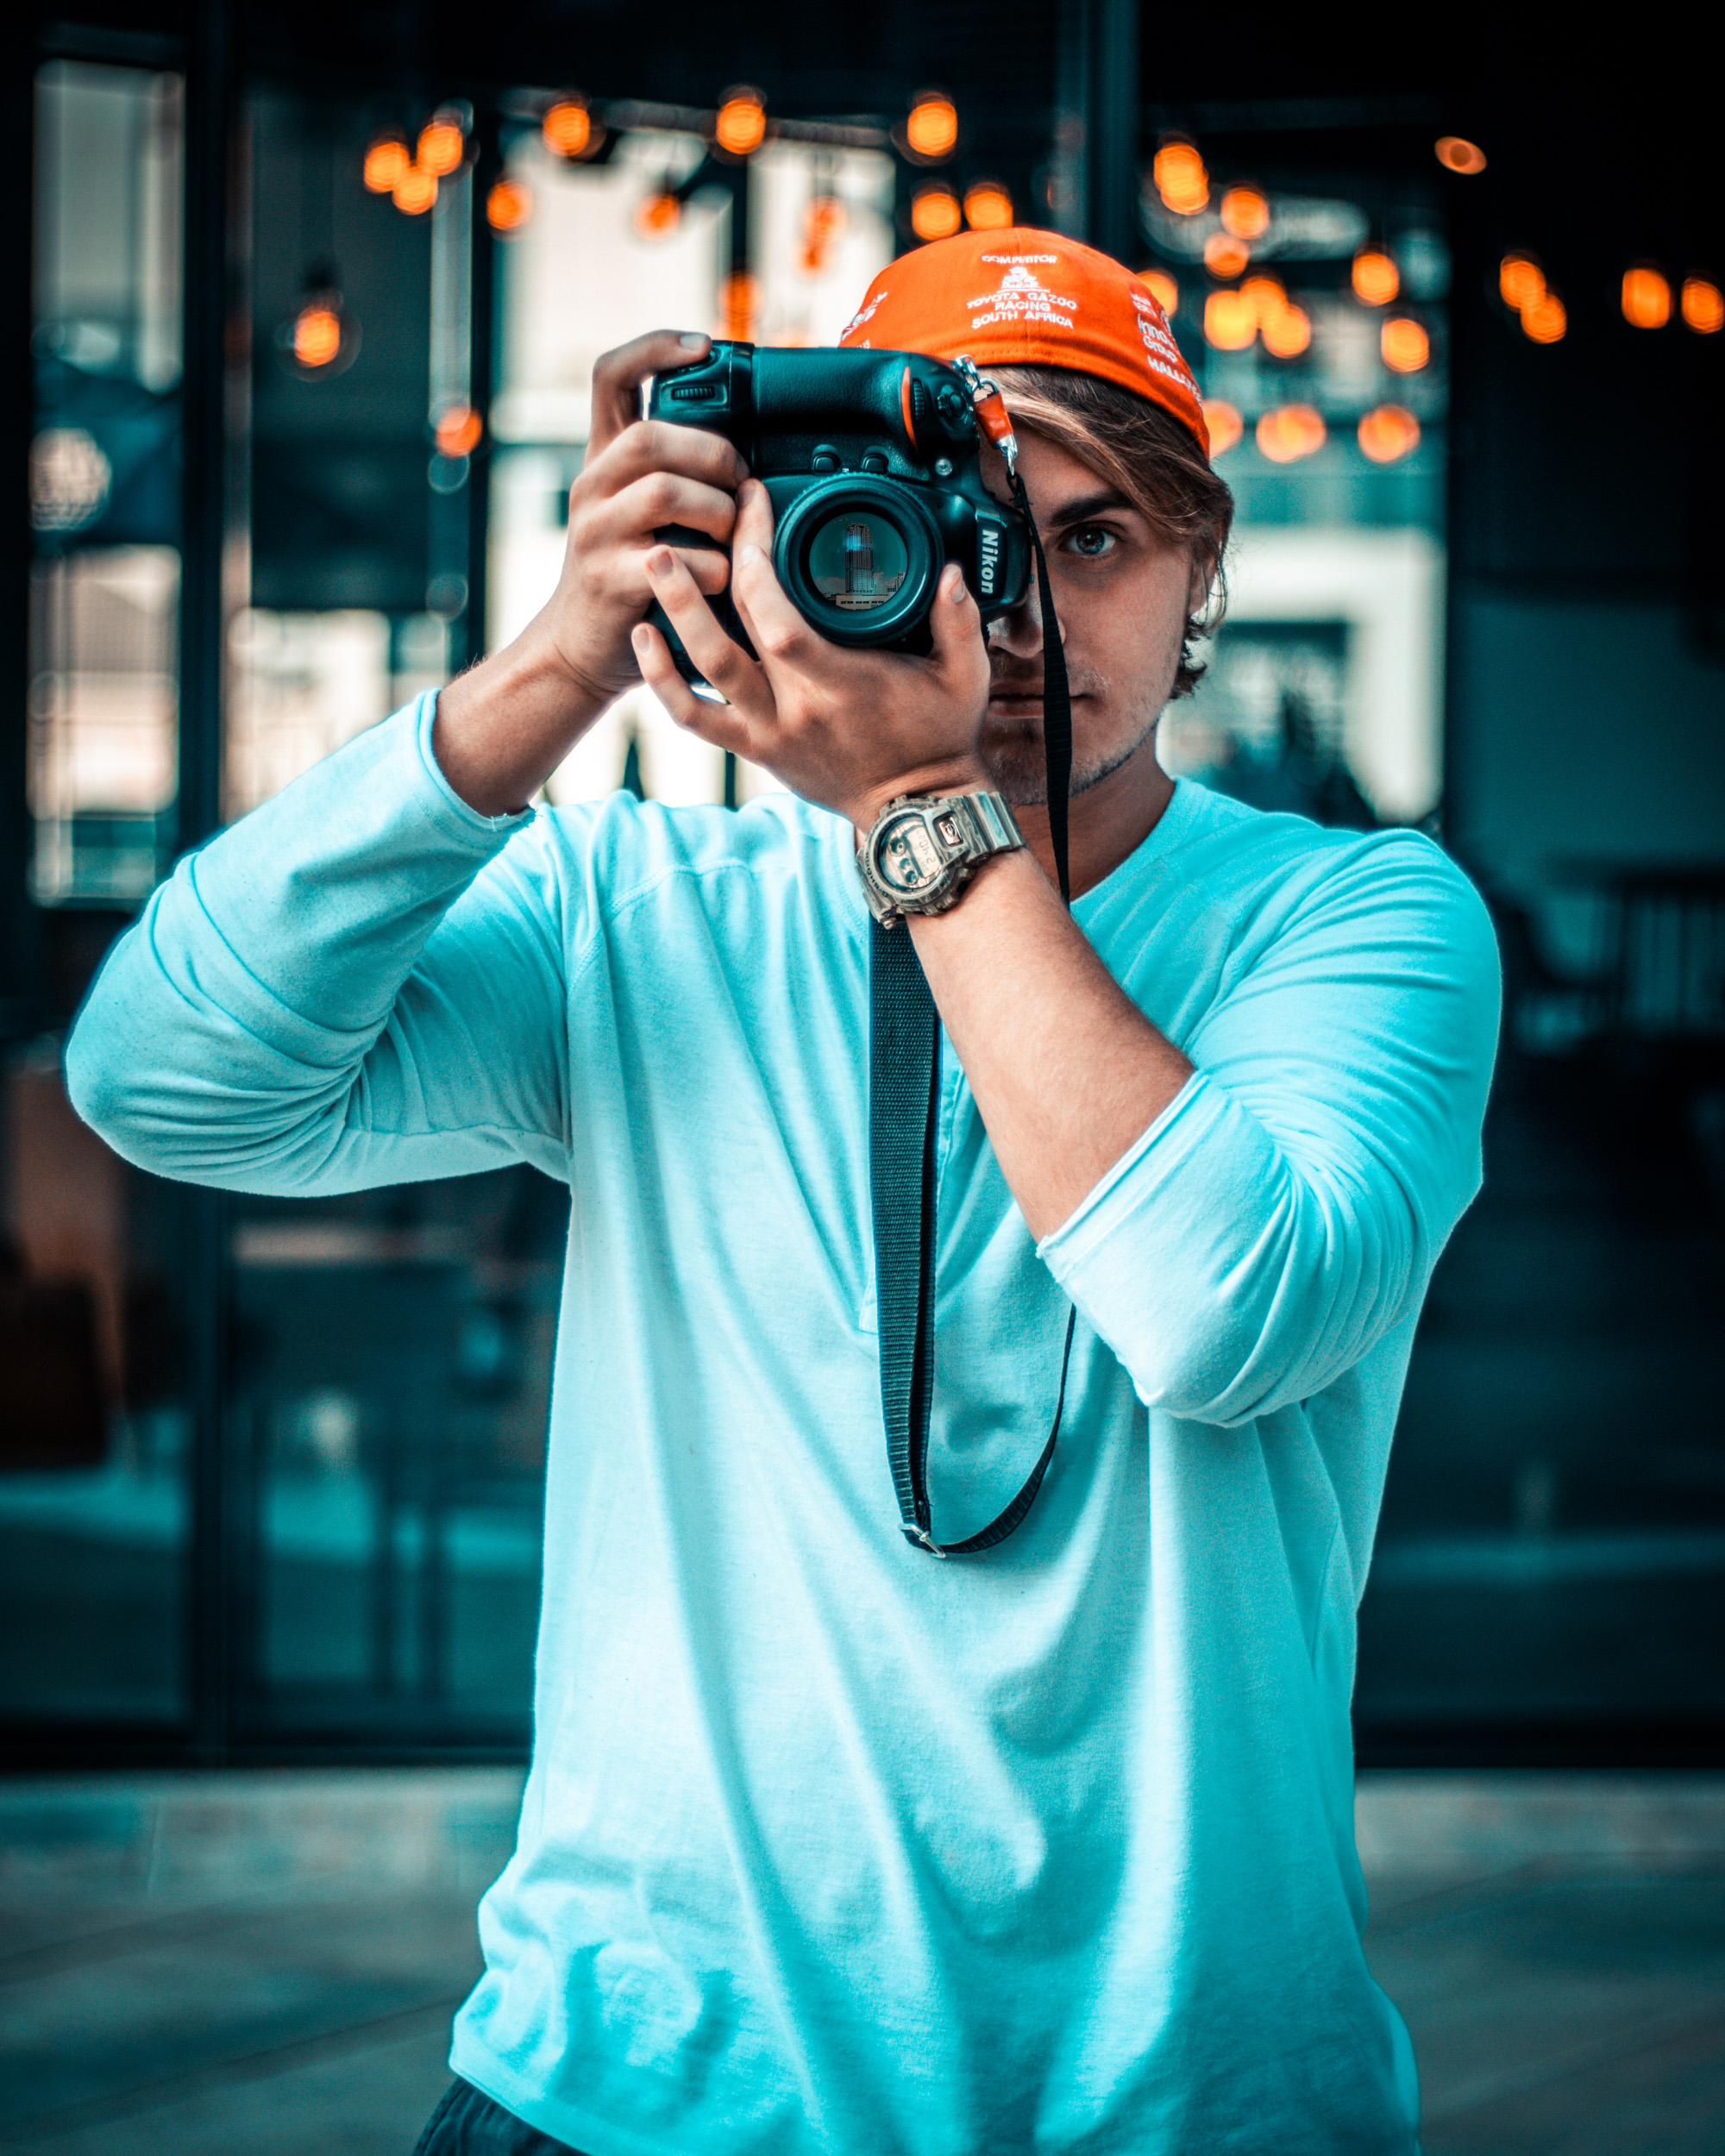 Photo Of Man Taking Pictures